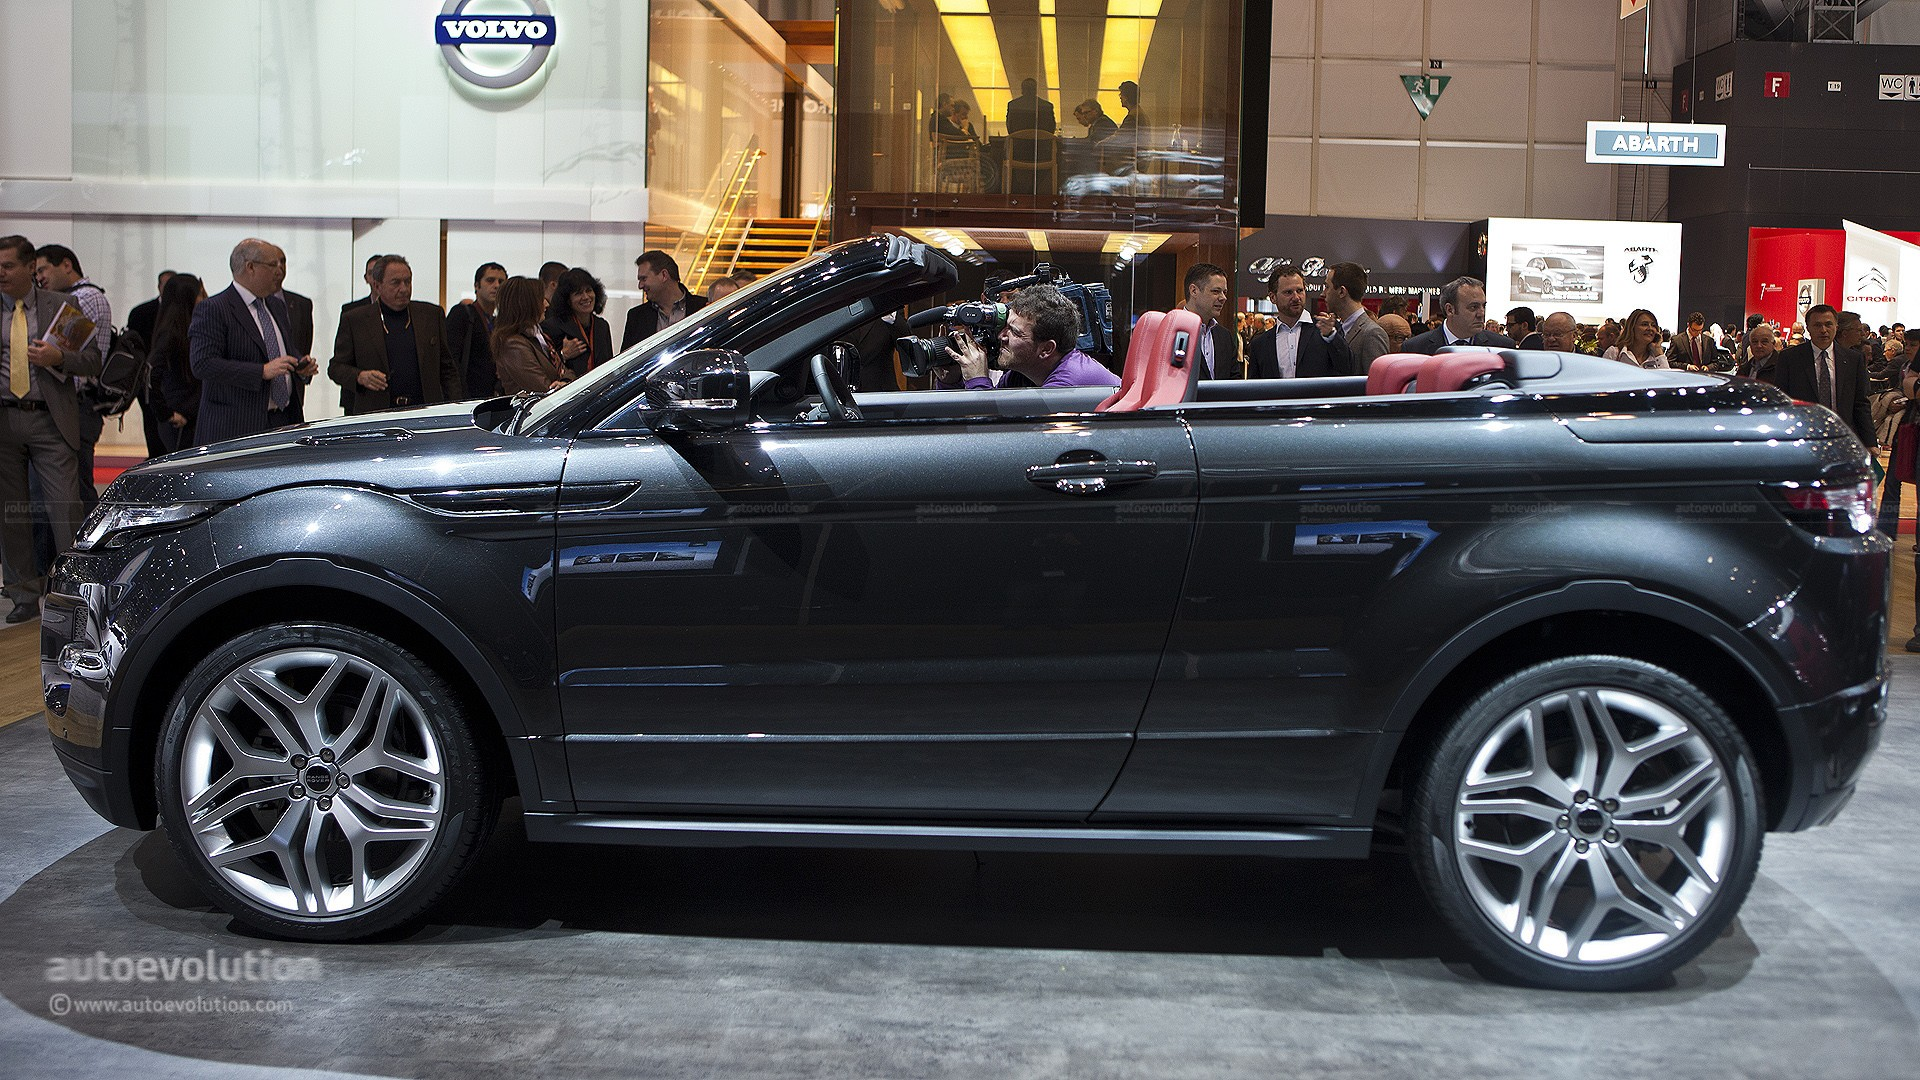 2016 Range Rover Evoque Convertible Spotted During Shoot